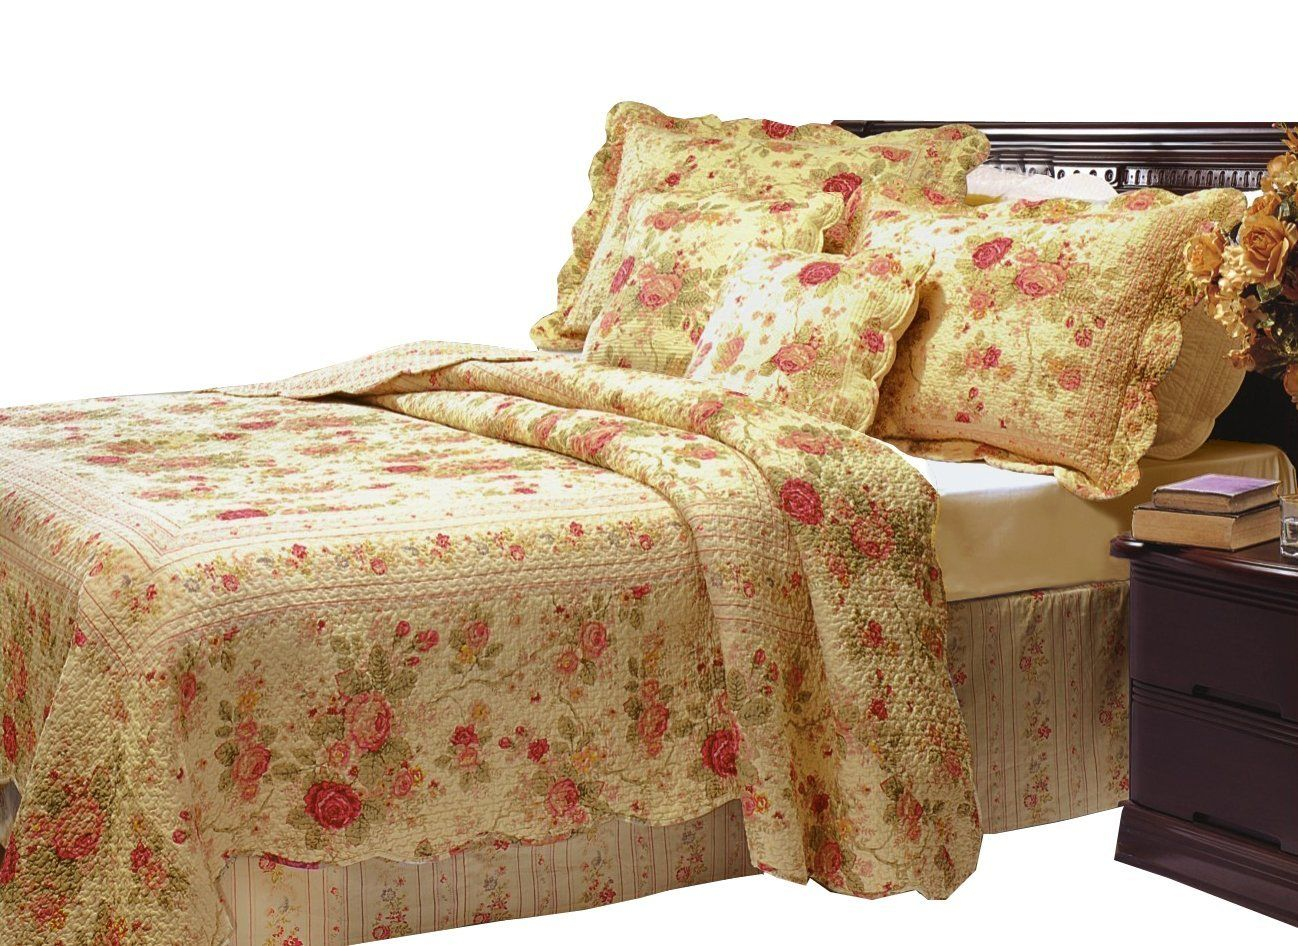 sg hotel count bed linen cover set thread covers savoy quilt queen sets